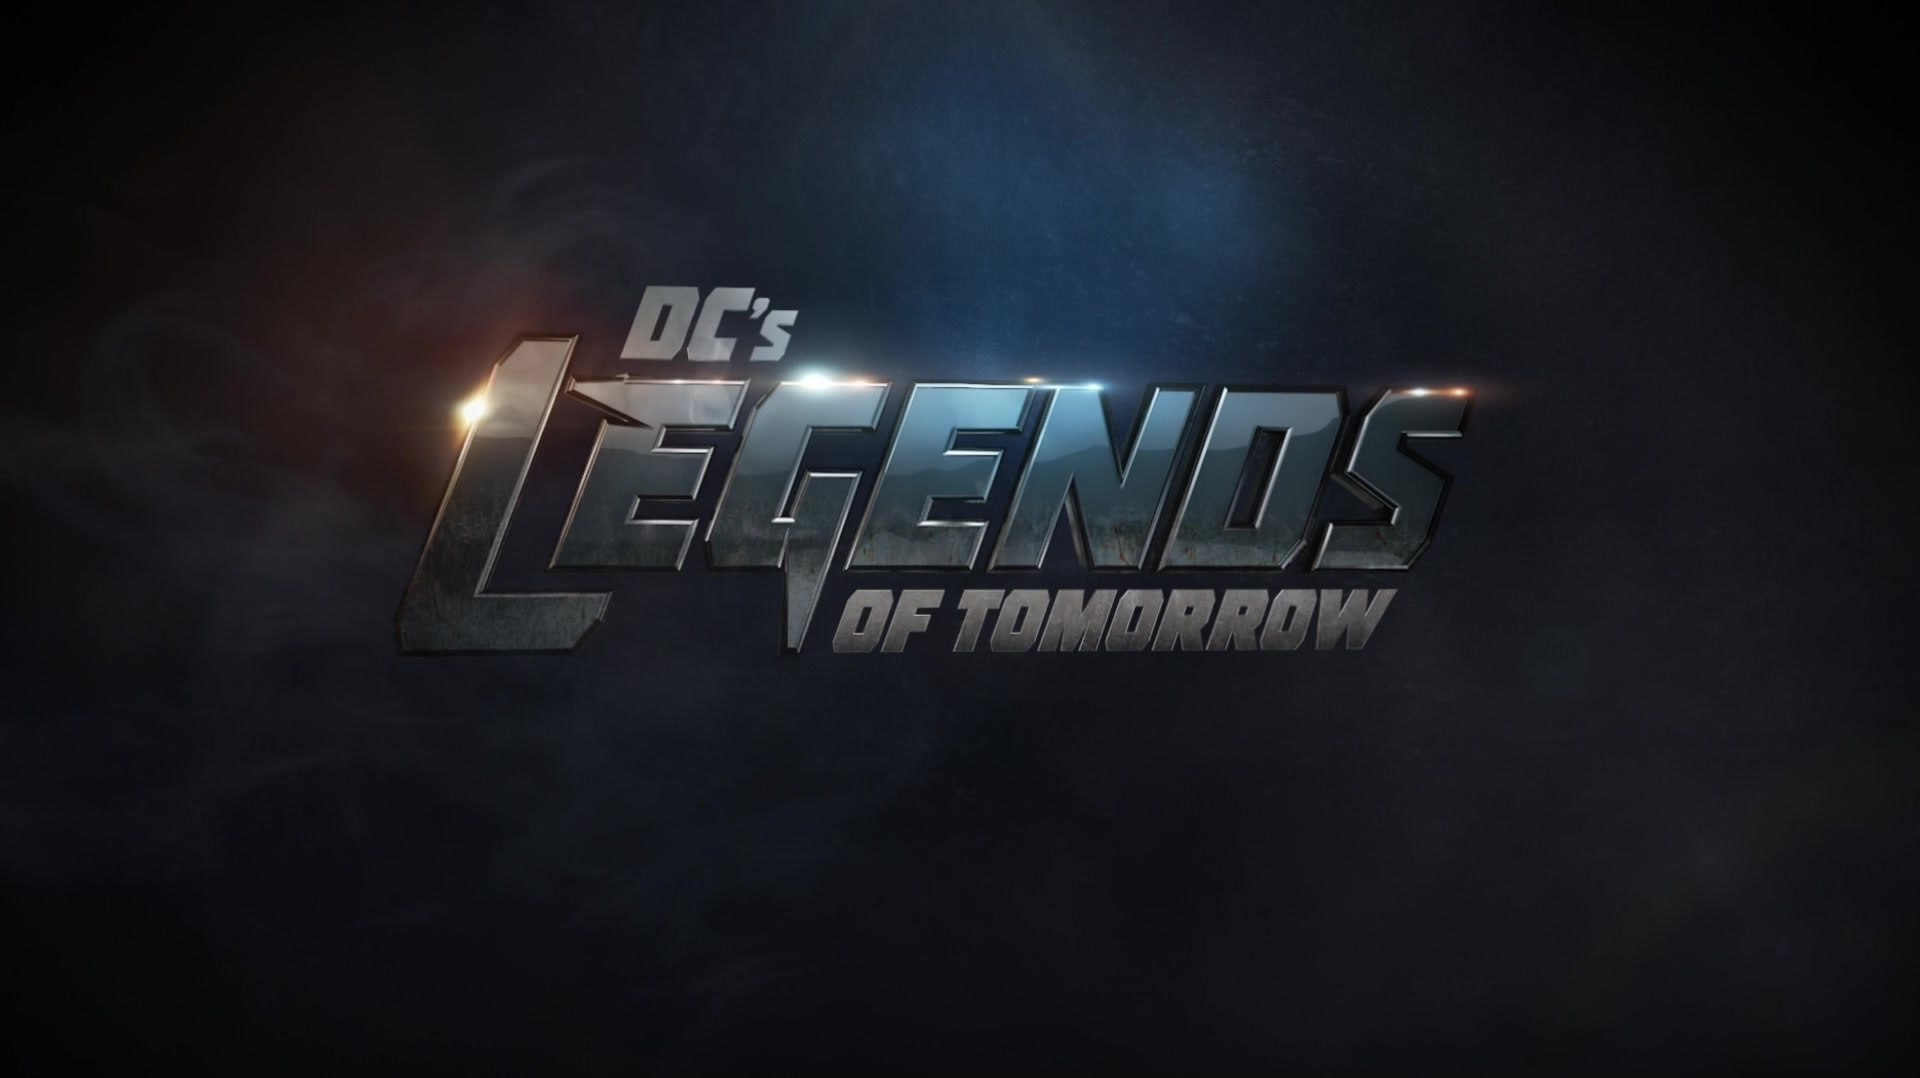 DC's Legends of Tomorrow (TV Series) Episode: I, Ava